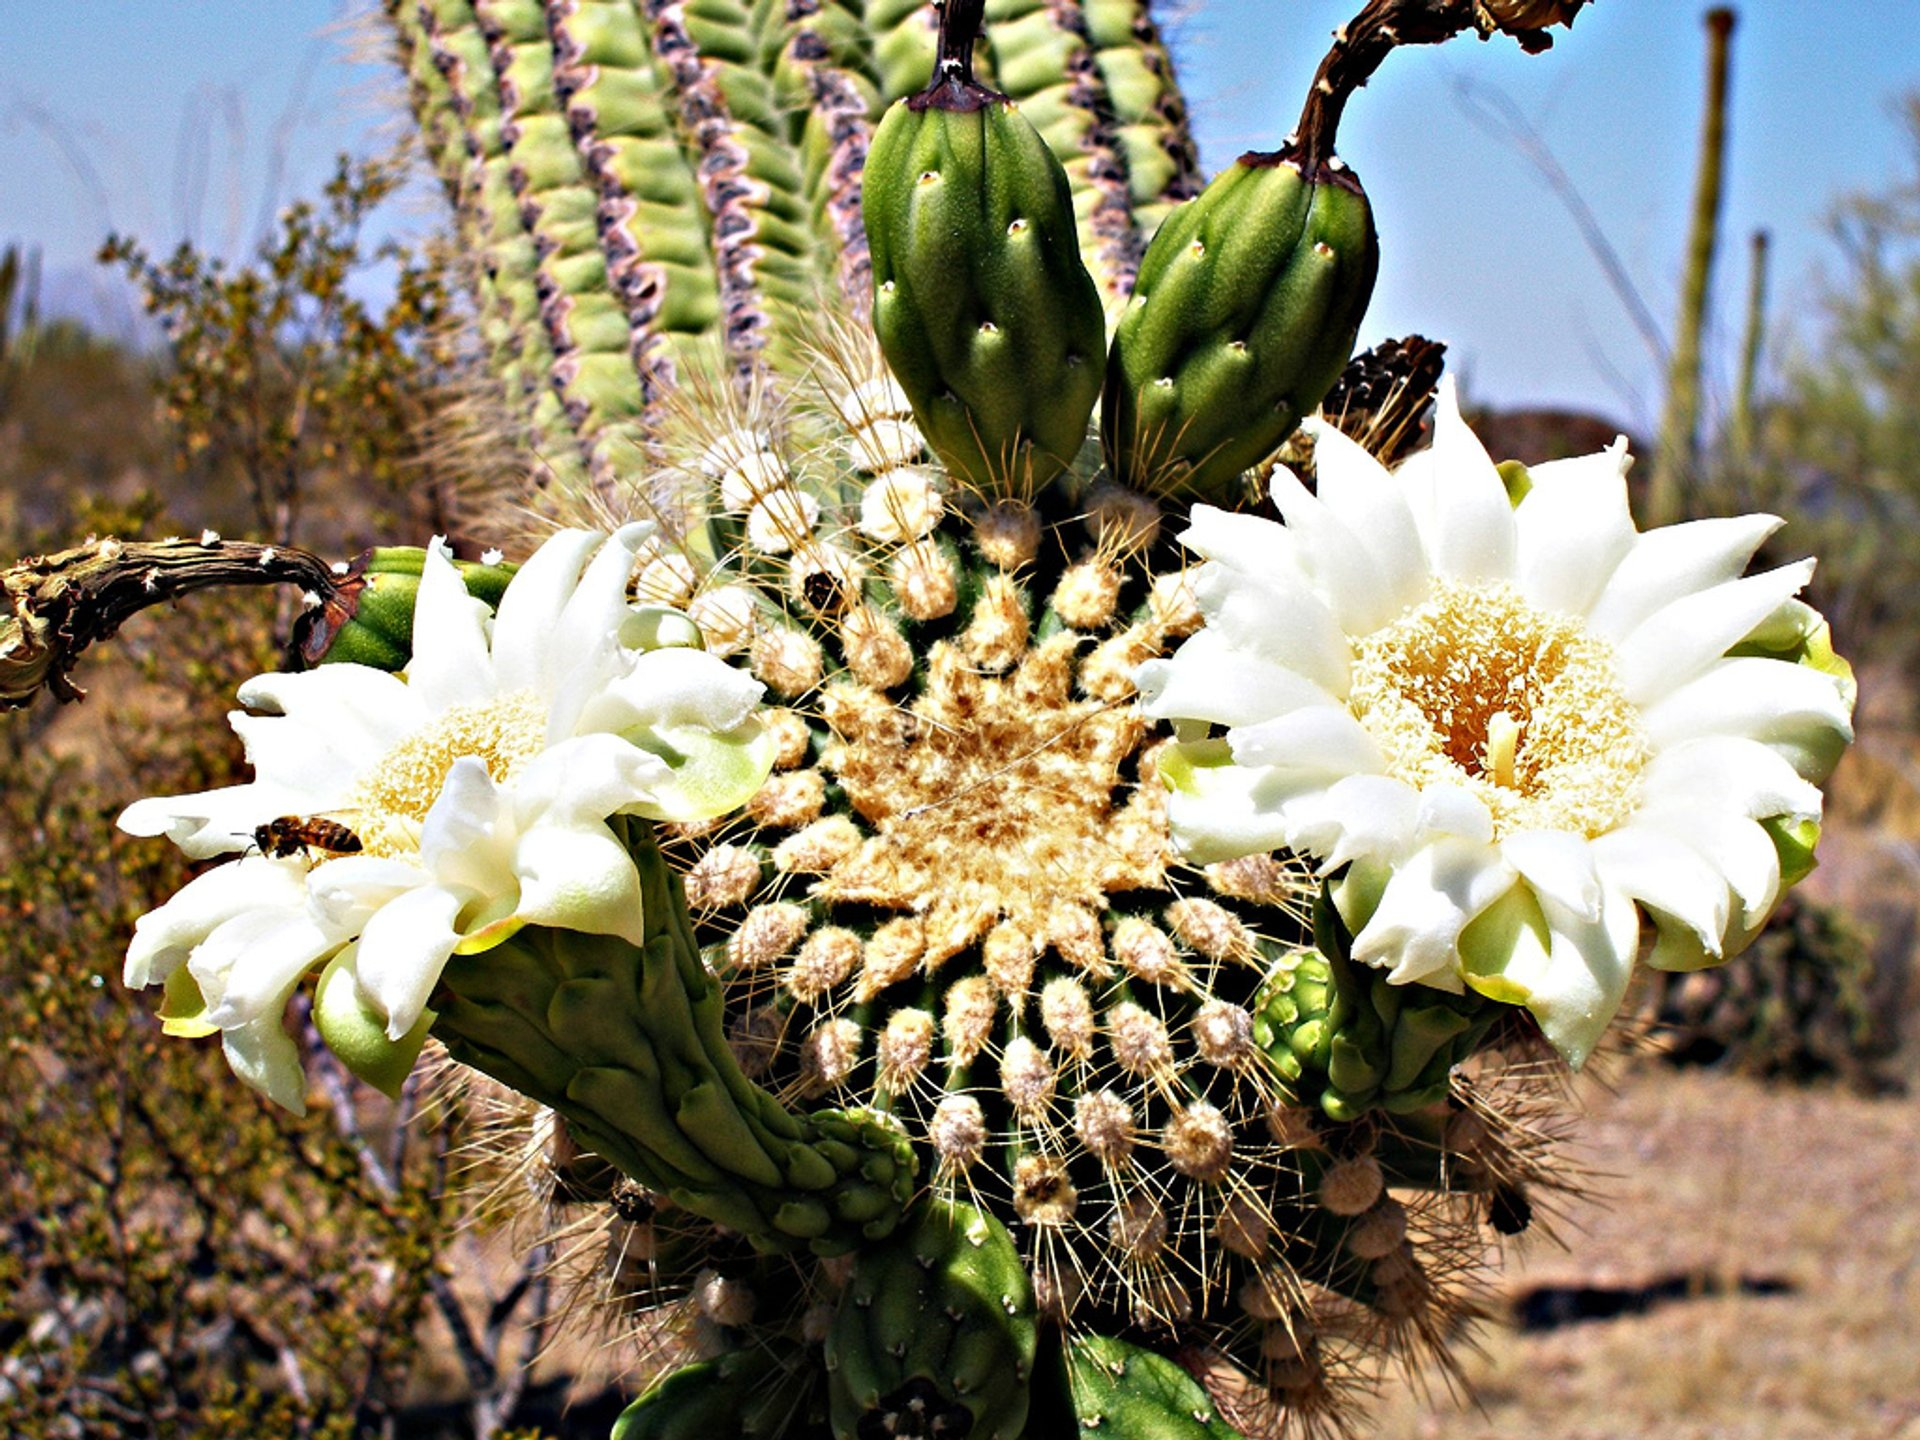 Cactus Bloom in Mexico 2019 - Best Time